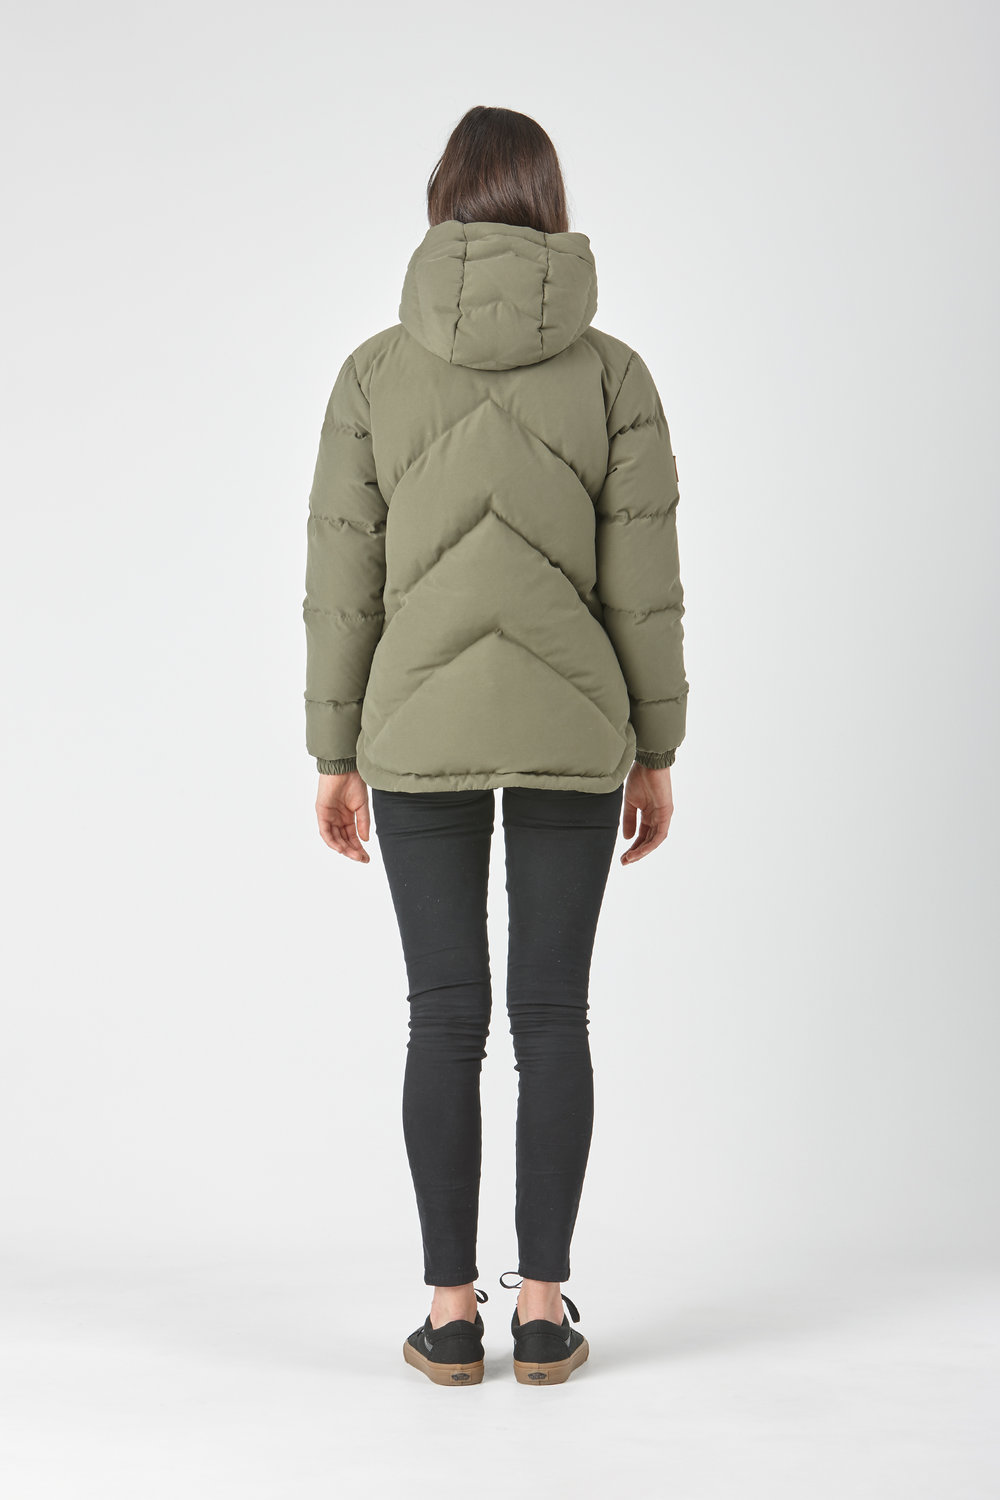 Huffer_OW-17_W-Classic-Down-Jacket_Olive-03.jpg